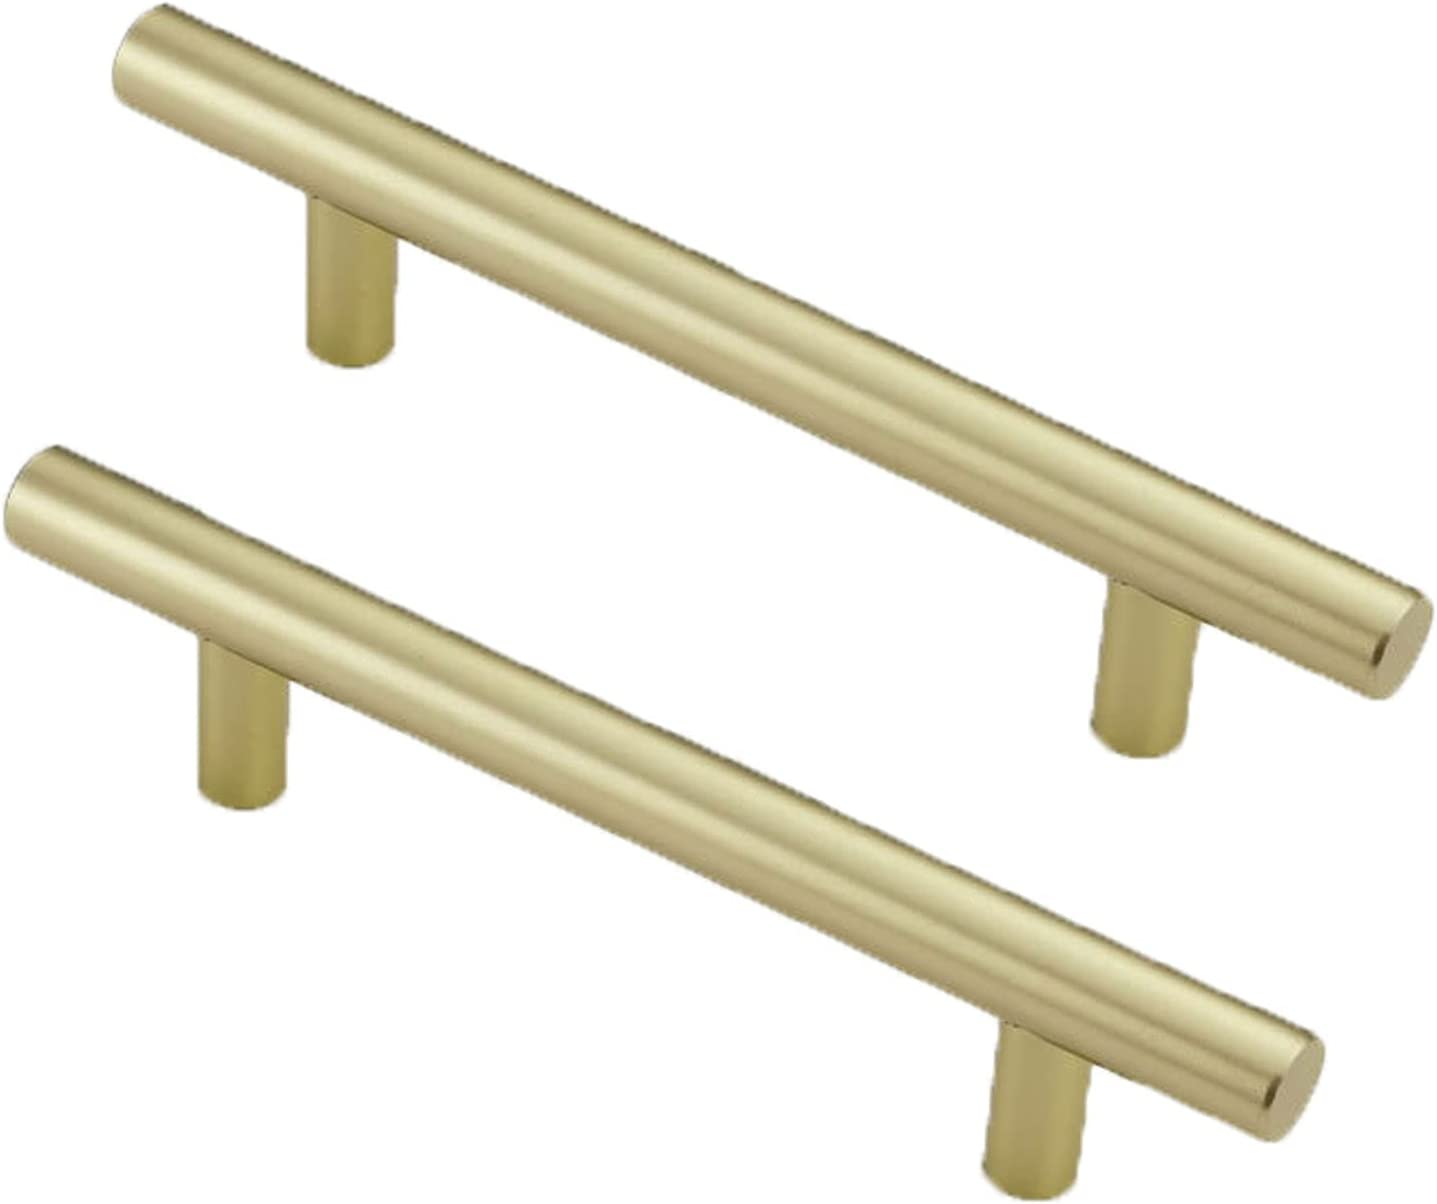 QJTAO Sliding Closet Door Handles for Colorado Springs Mall Max 51% OFF and Drawer Pulls Cabinets